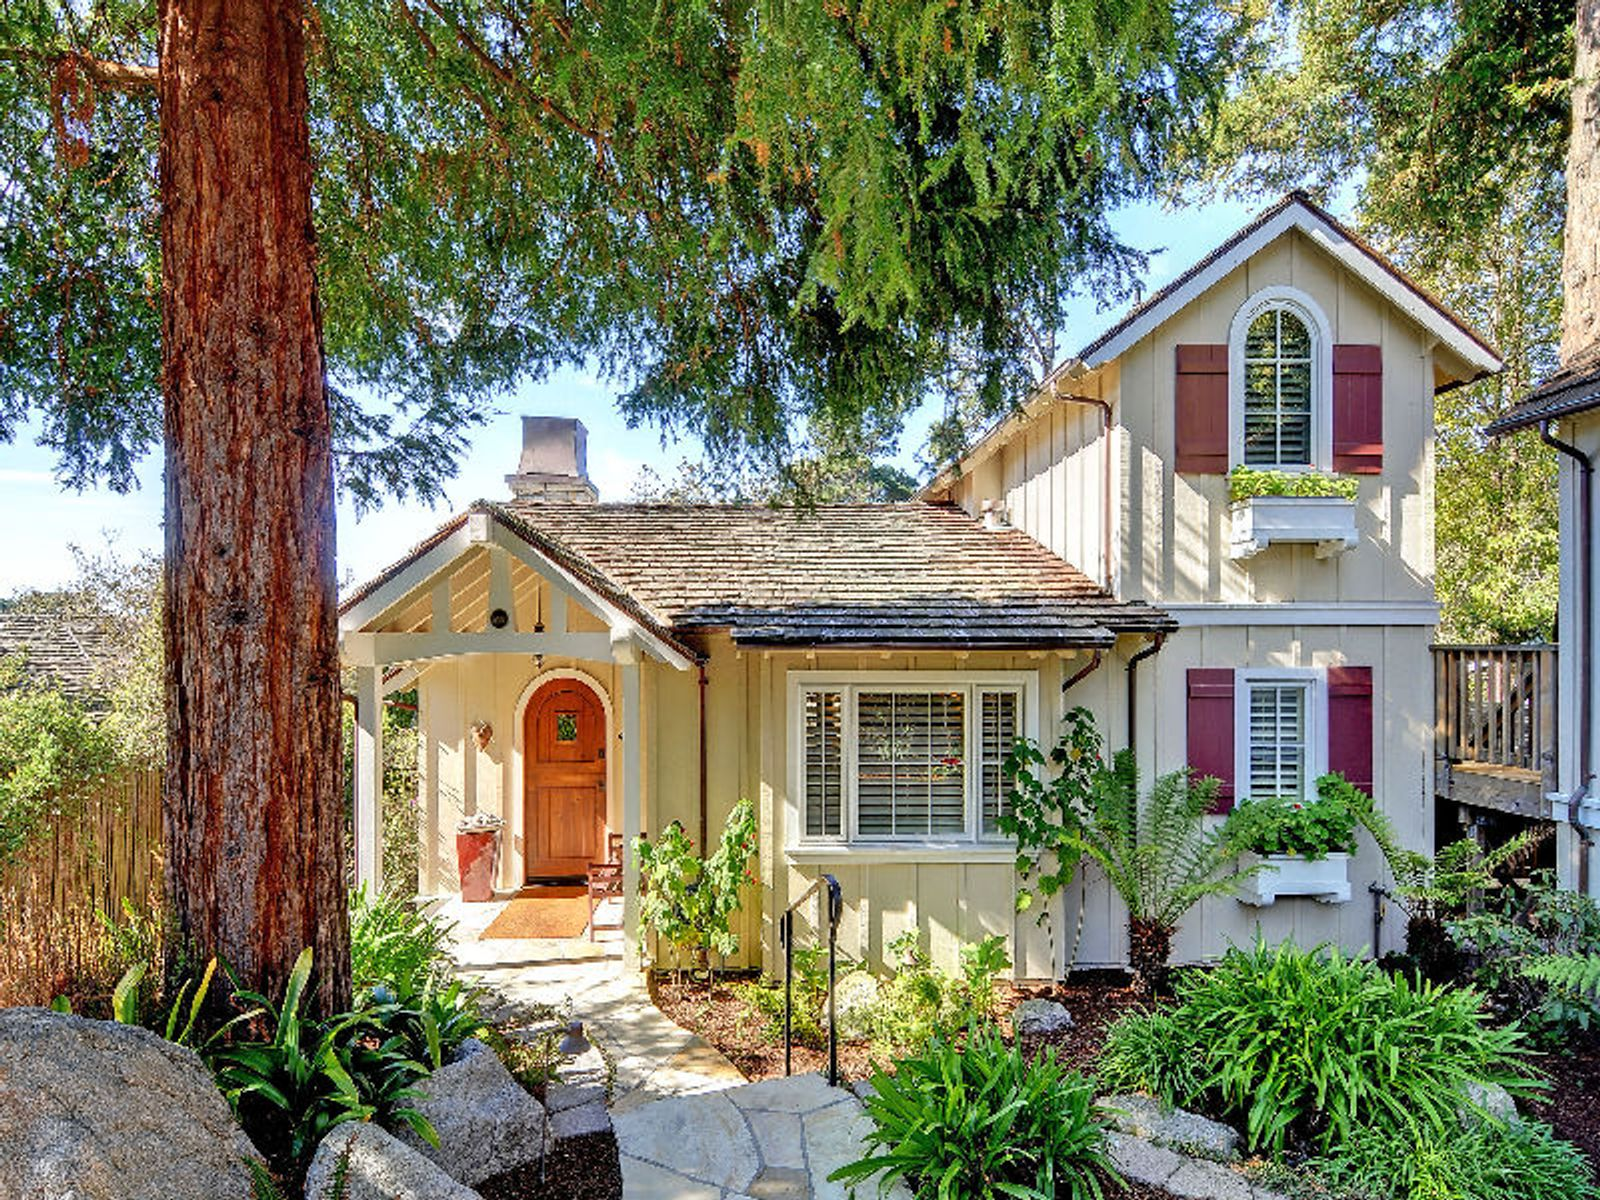 Dream Come True, Carmel CA Single Family Home - Monterey Real Estate